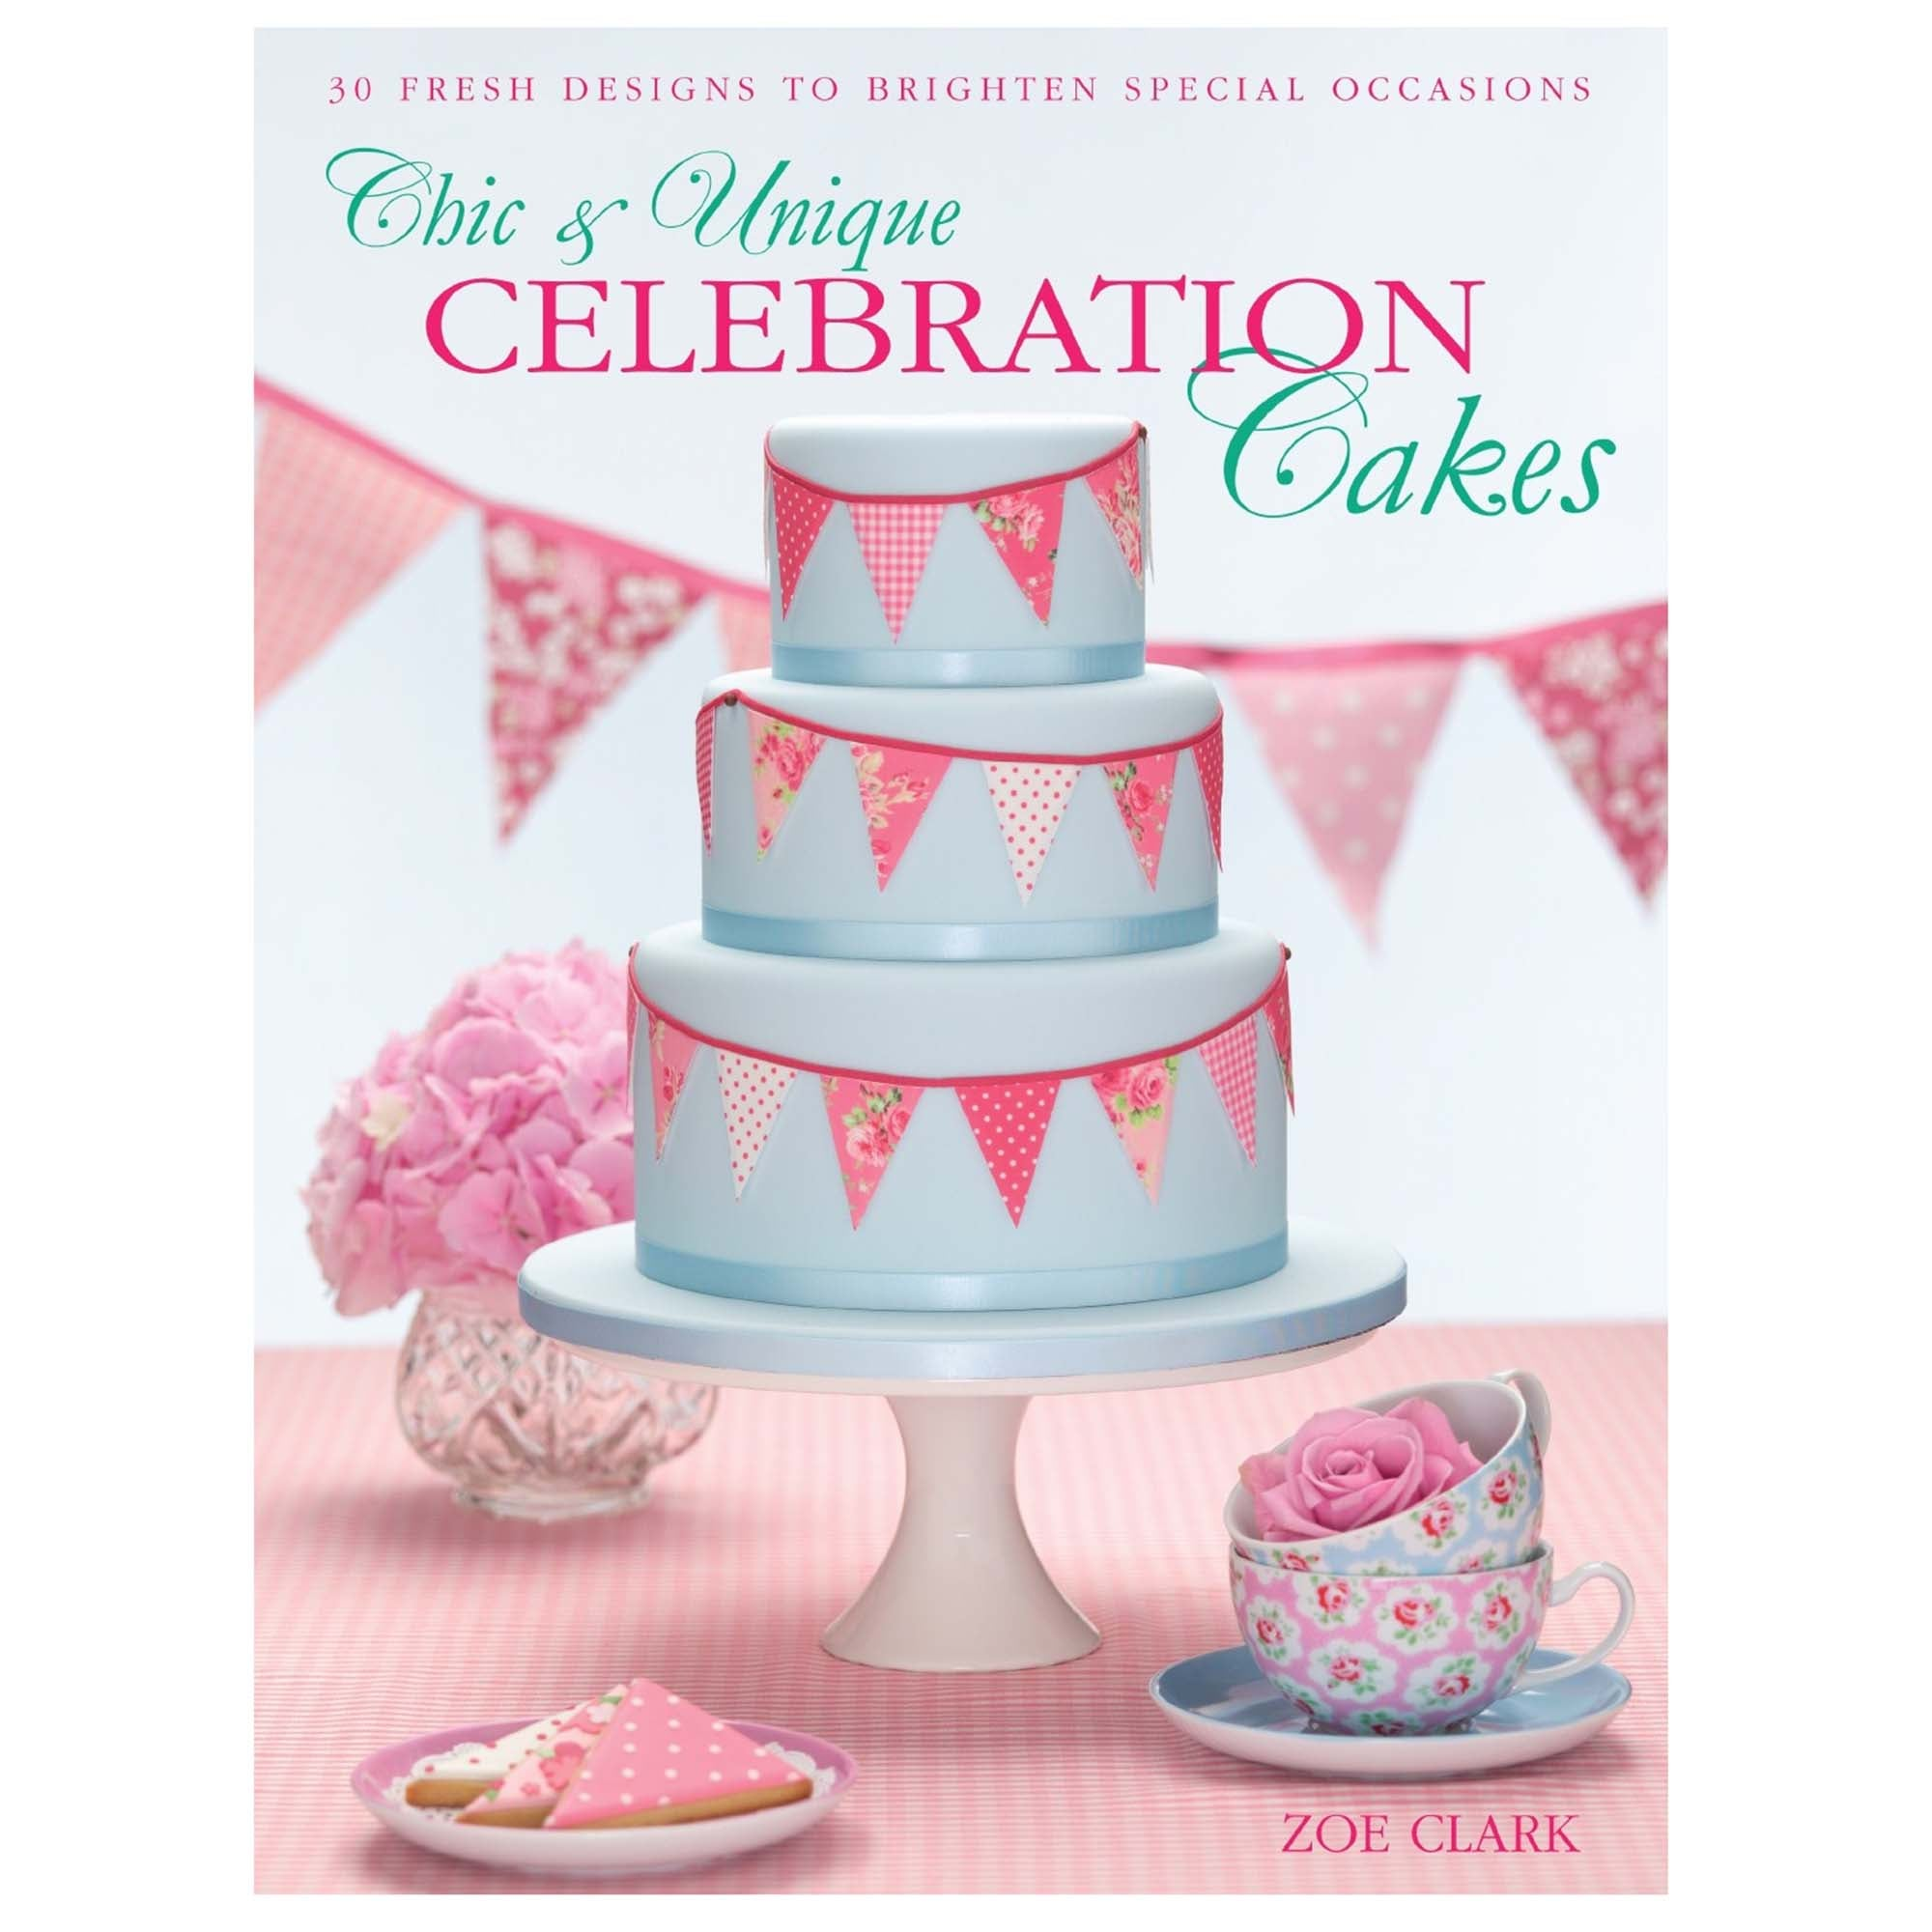 Chic and Unique Celebration Cakes Book